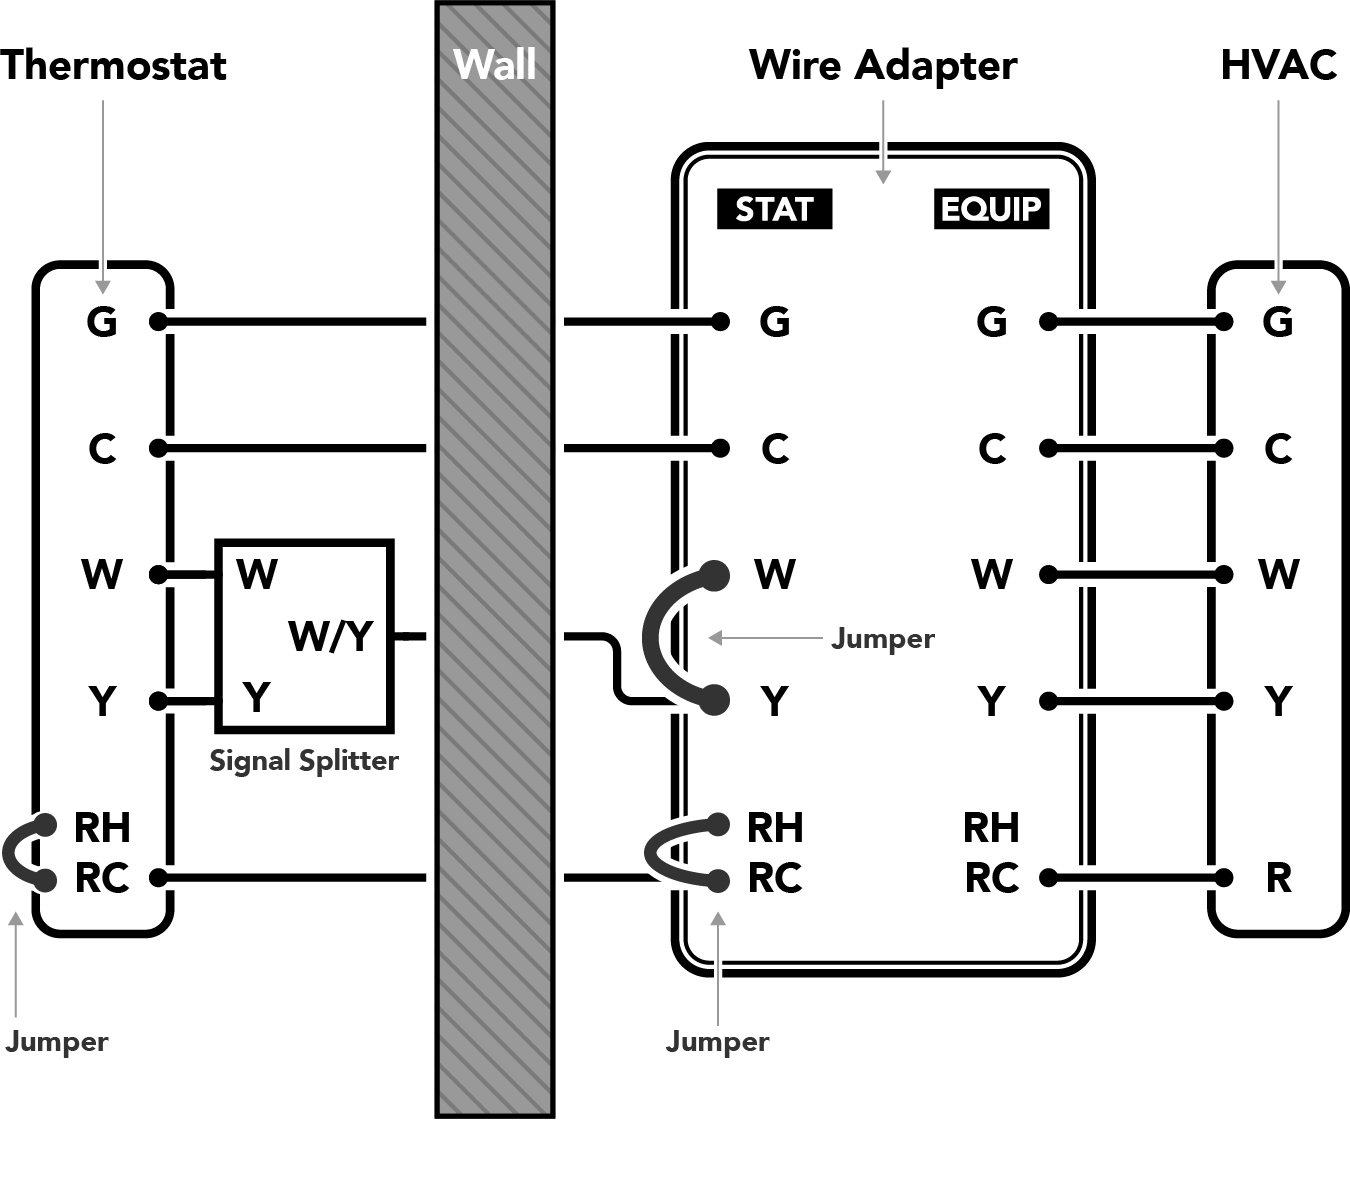 hight resolution of installing the thermostat wire adapter u2013 customer supportdiagram 01 conventional heat and ac 4 wires 2015 11 17 v4 conventional heat